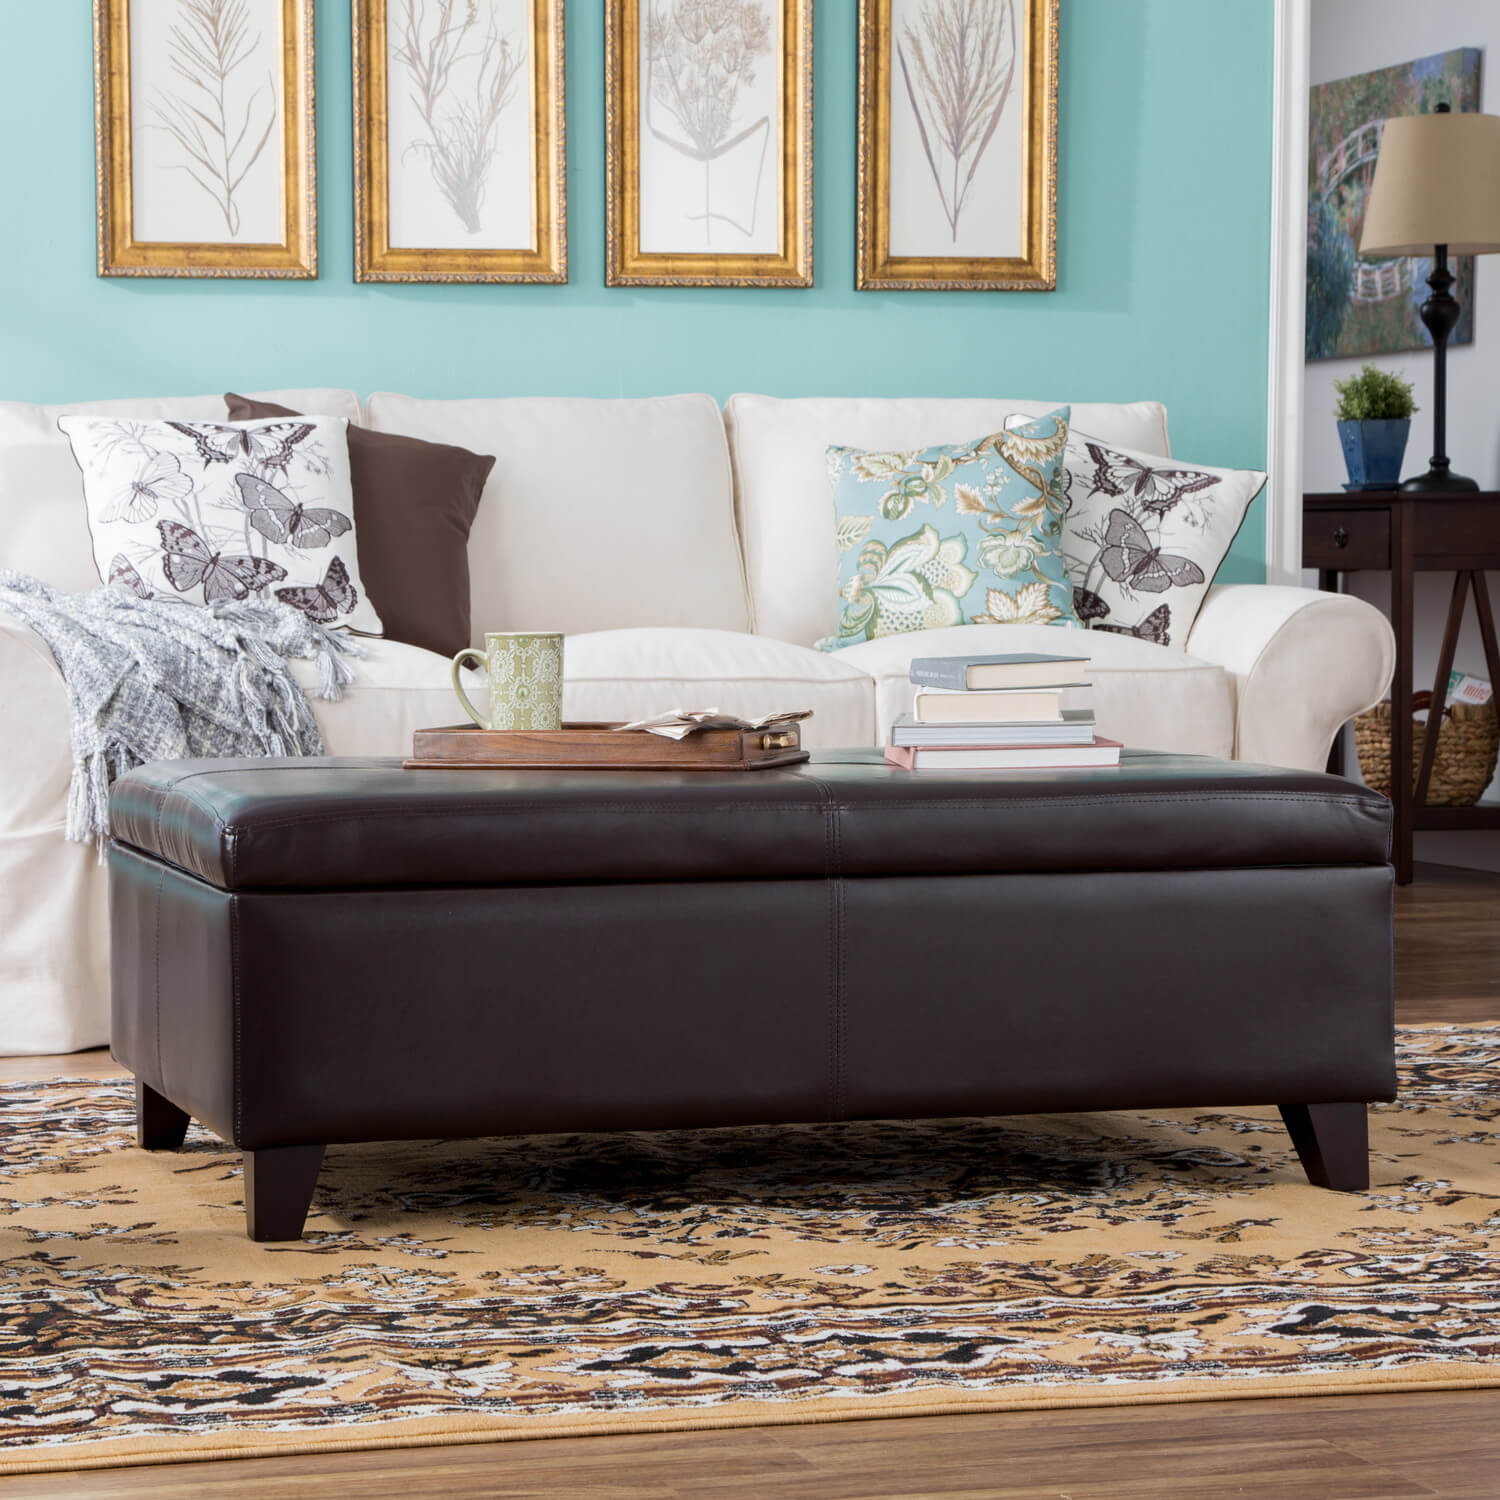 Ottomans are most common in living rooms, where you can use them to store blankets or pillows.